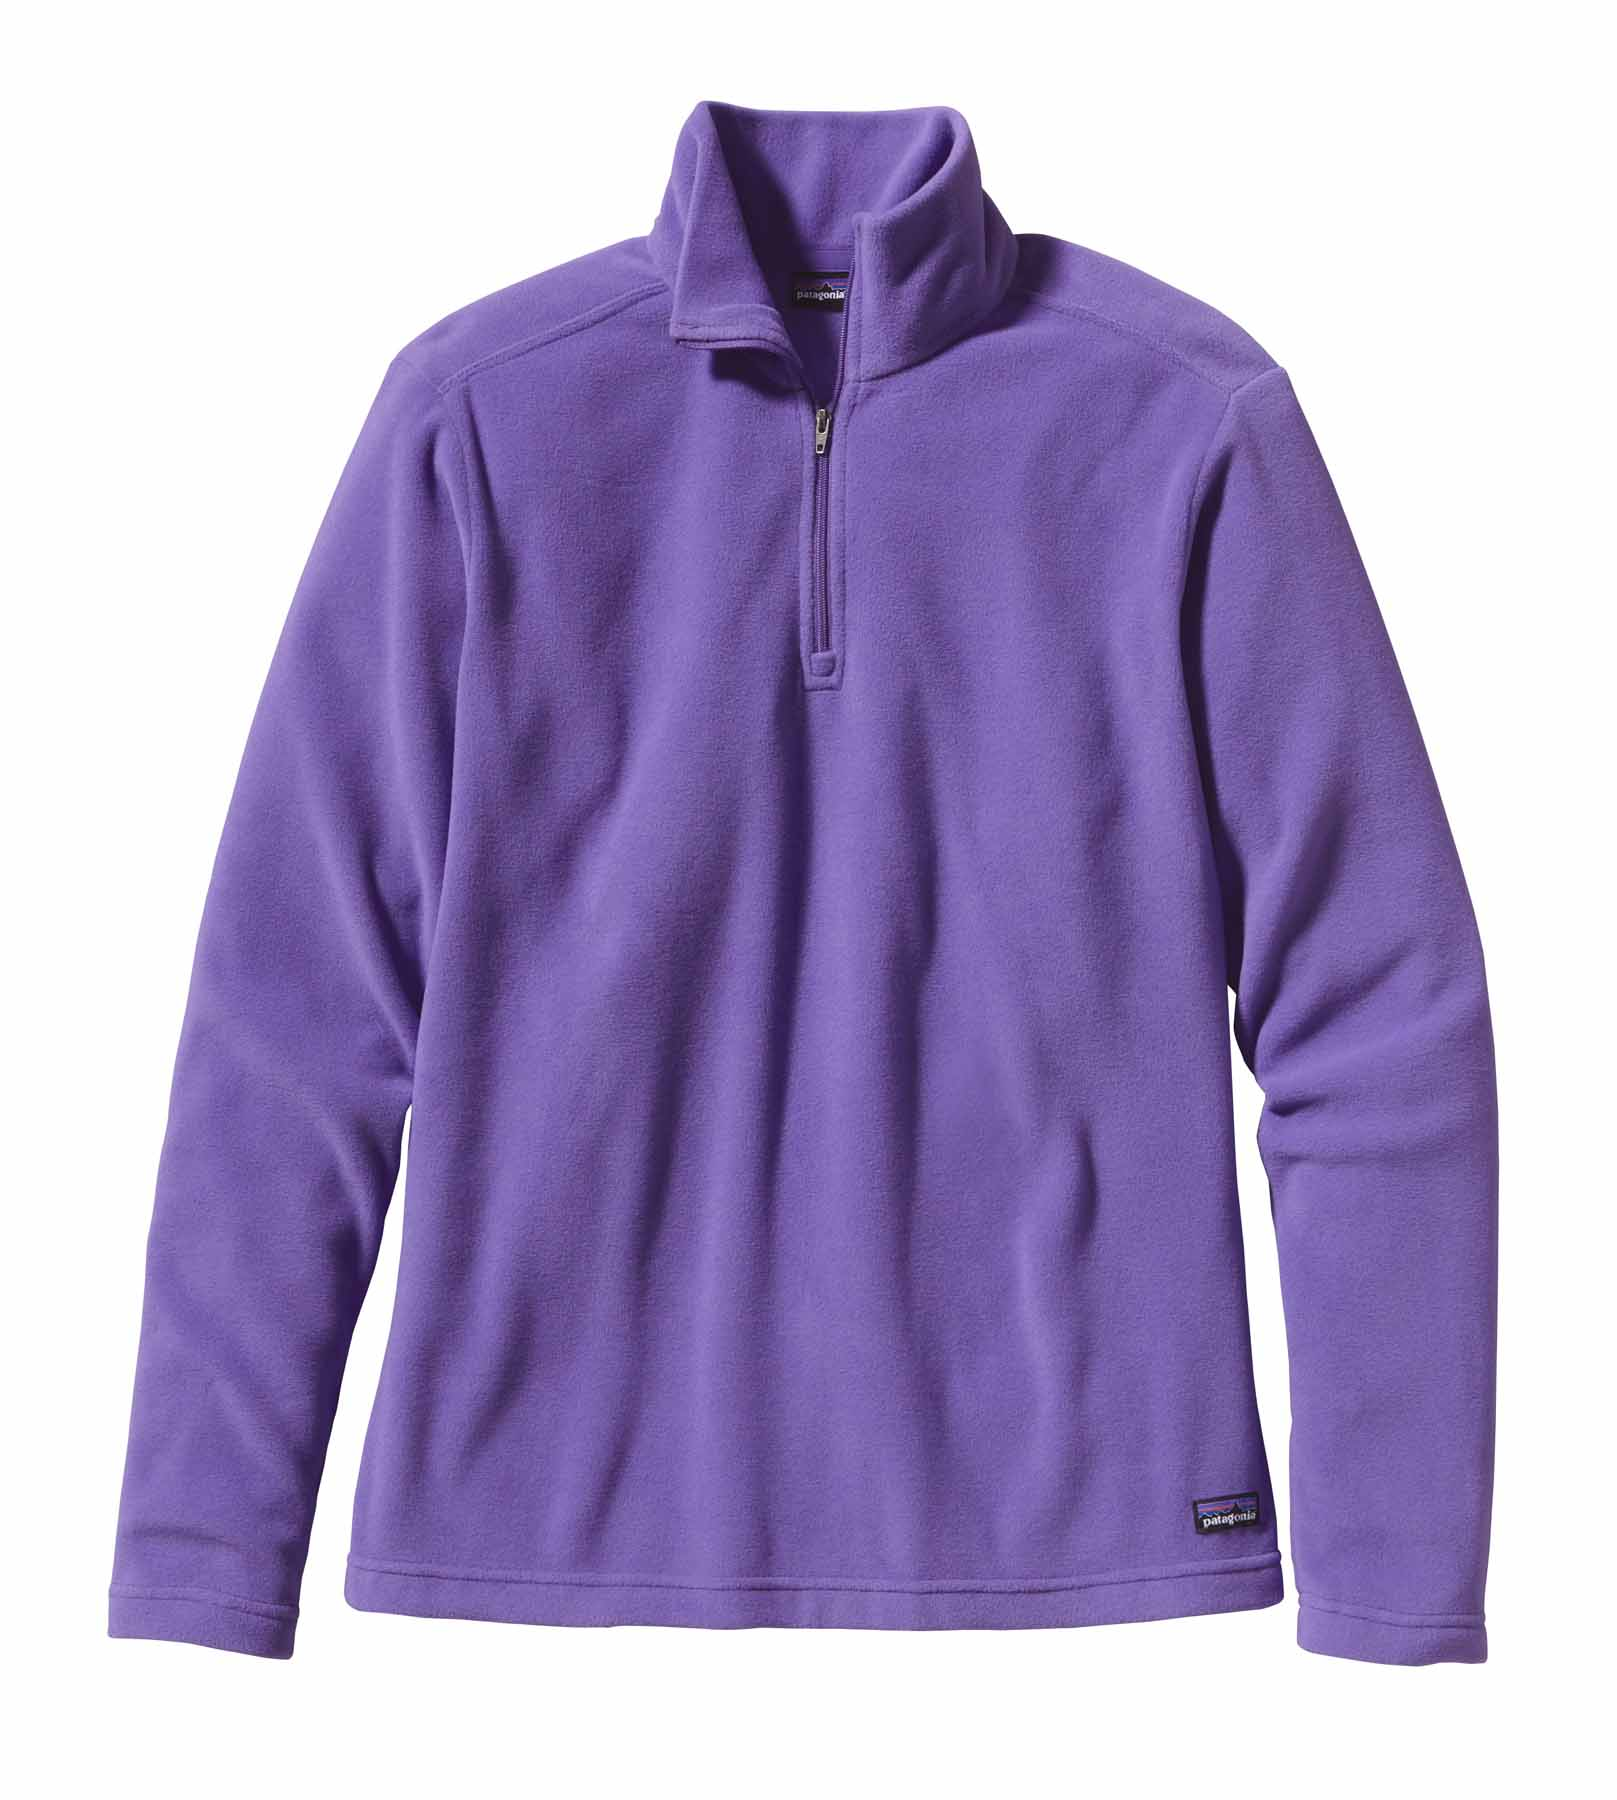 PATAGONIA W'S MICRO D-LUXE 1/4 ZIP (26277)